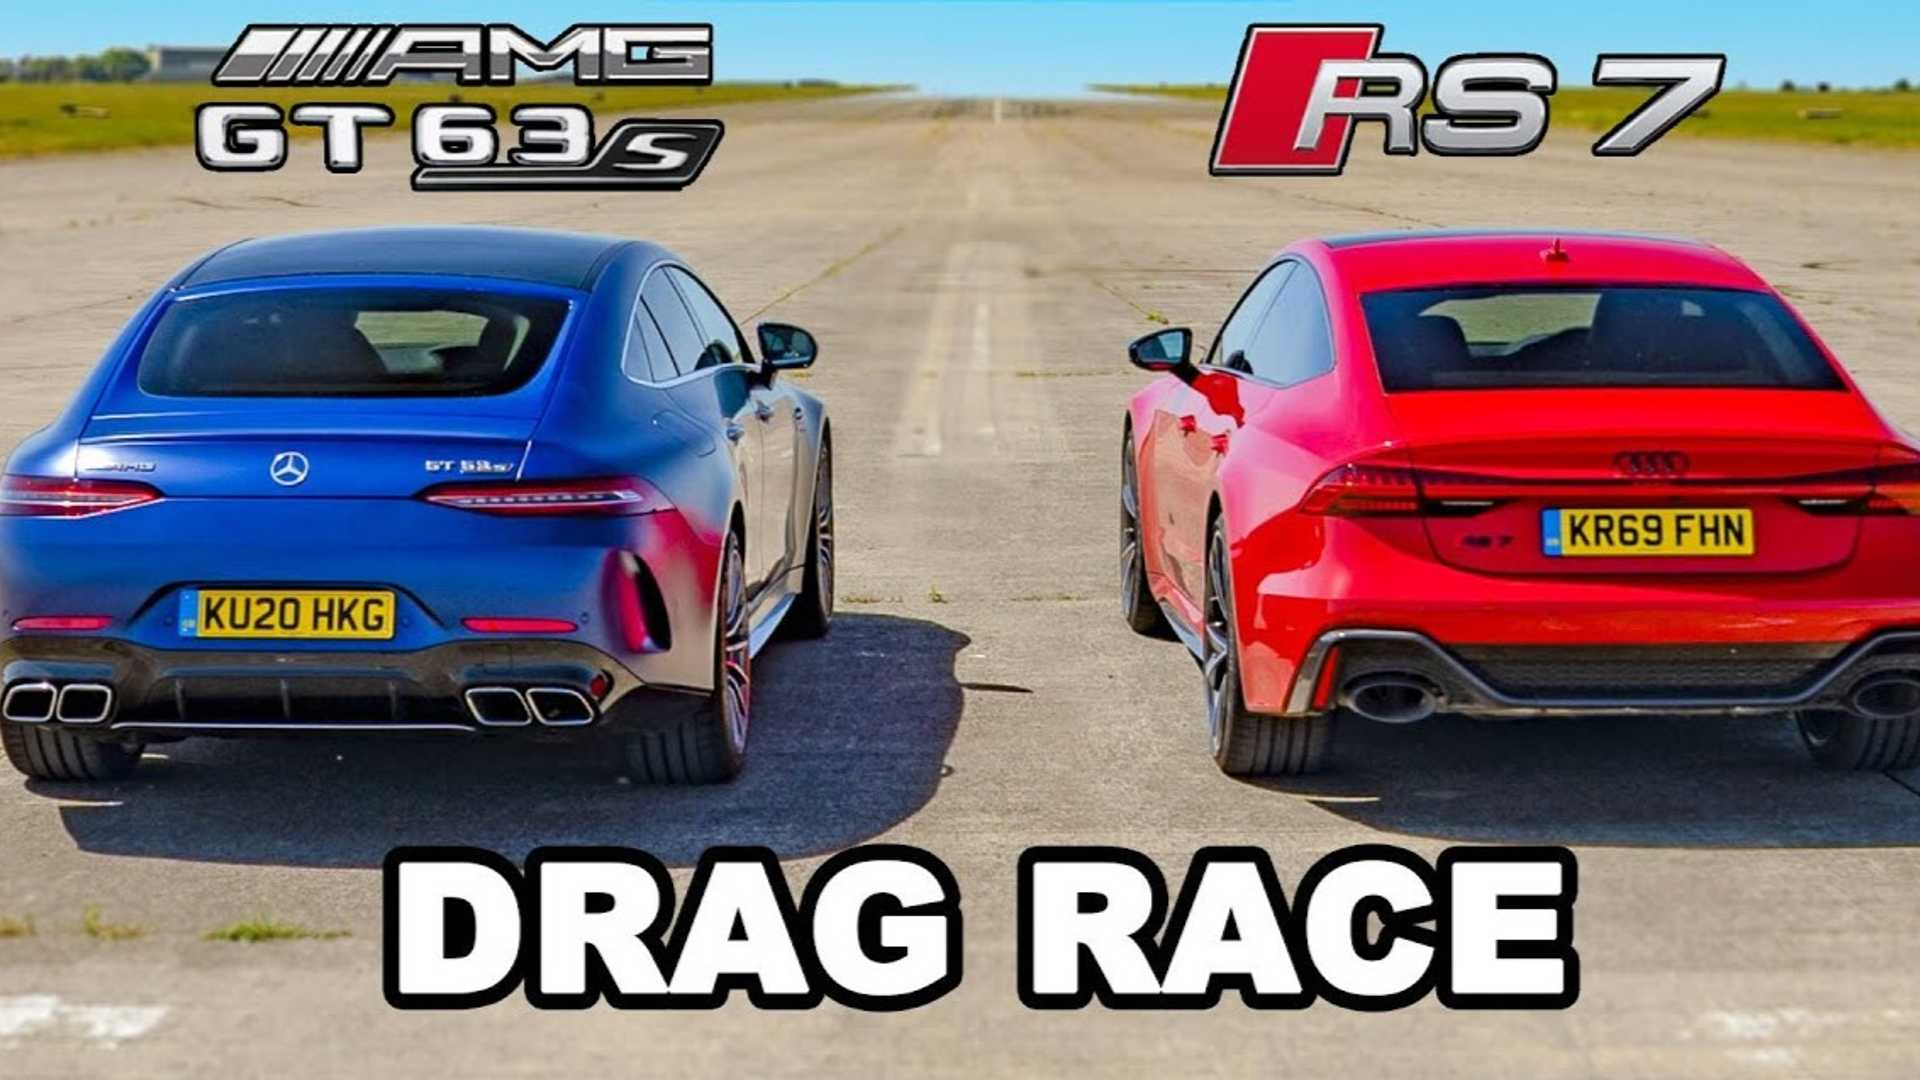 Mercedes-AMG GT63 S vs. Audi RS7